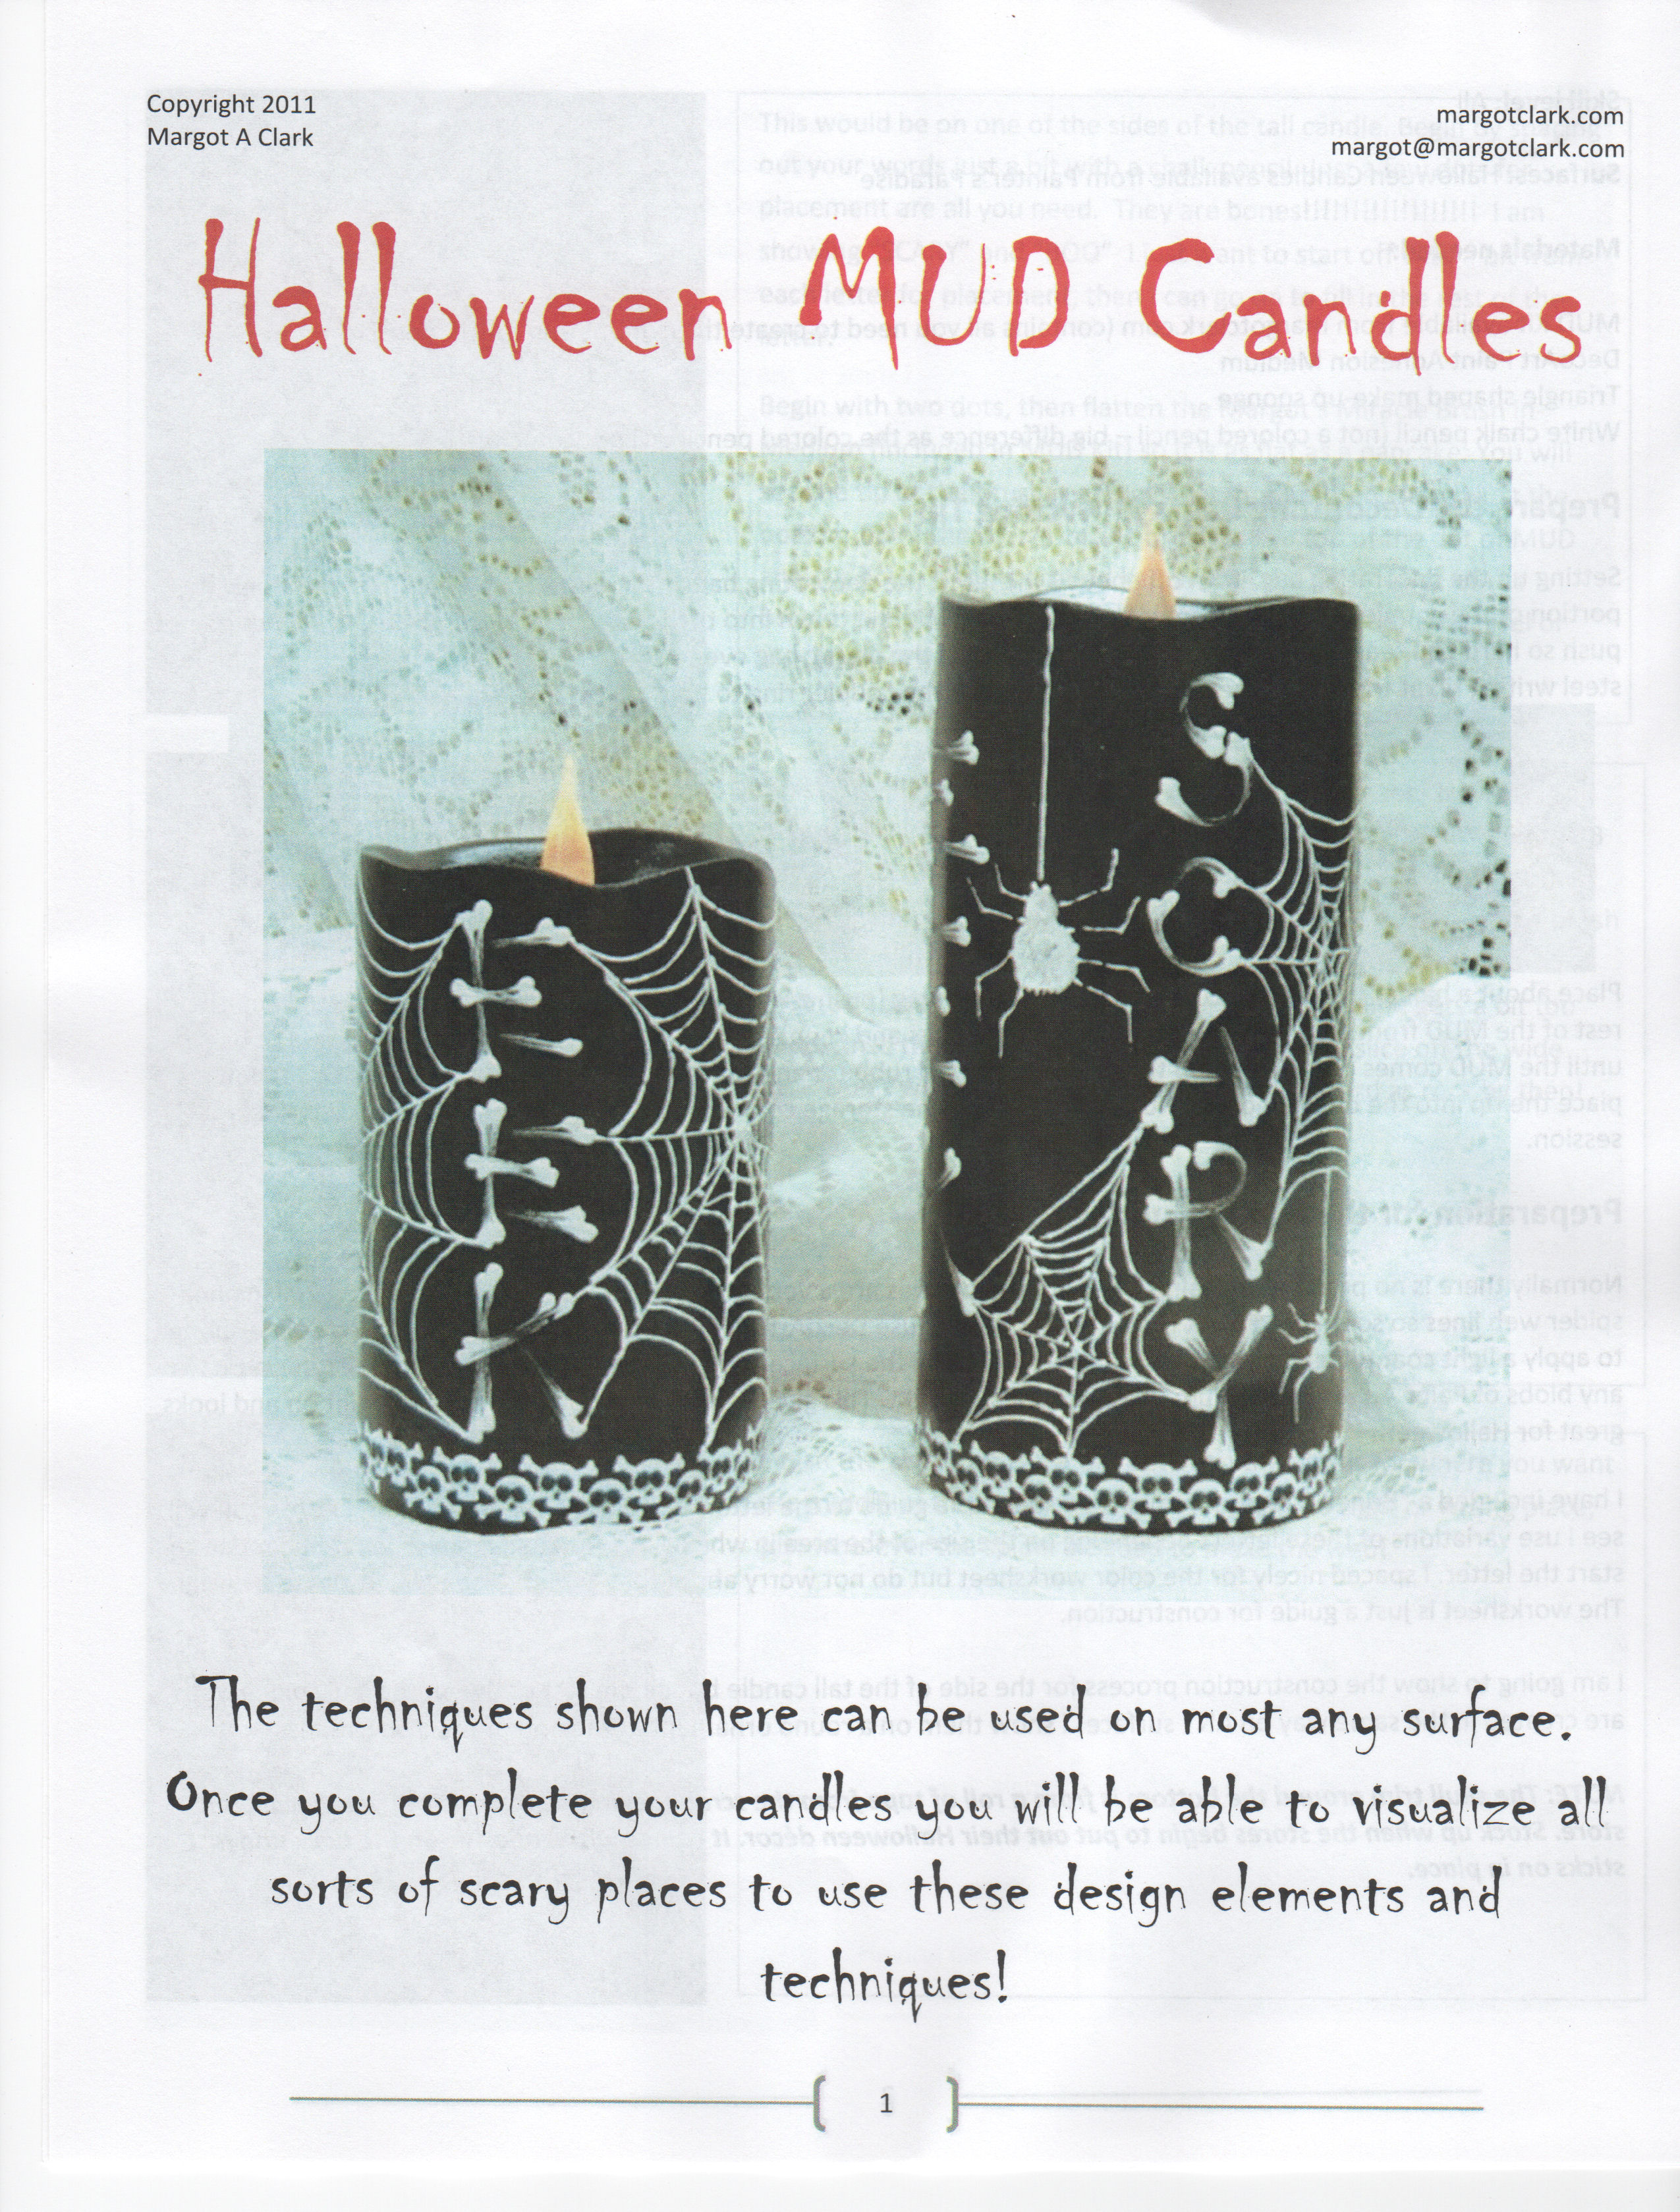 pp-mc-halloween-mud-candles1331.jpg